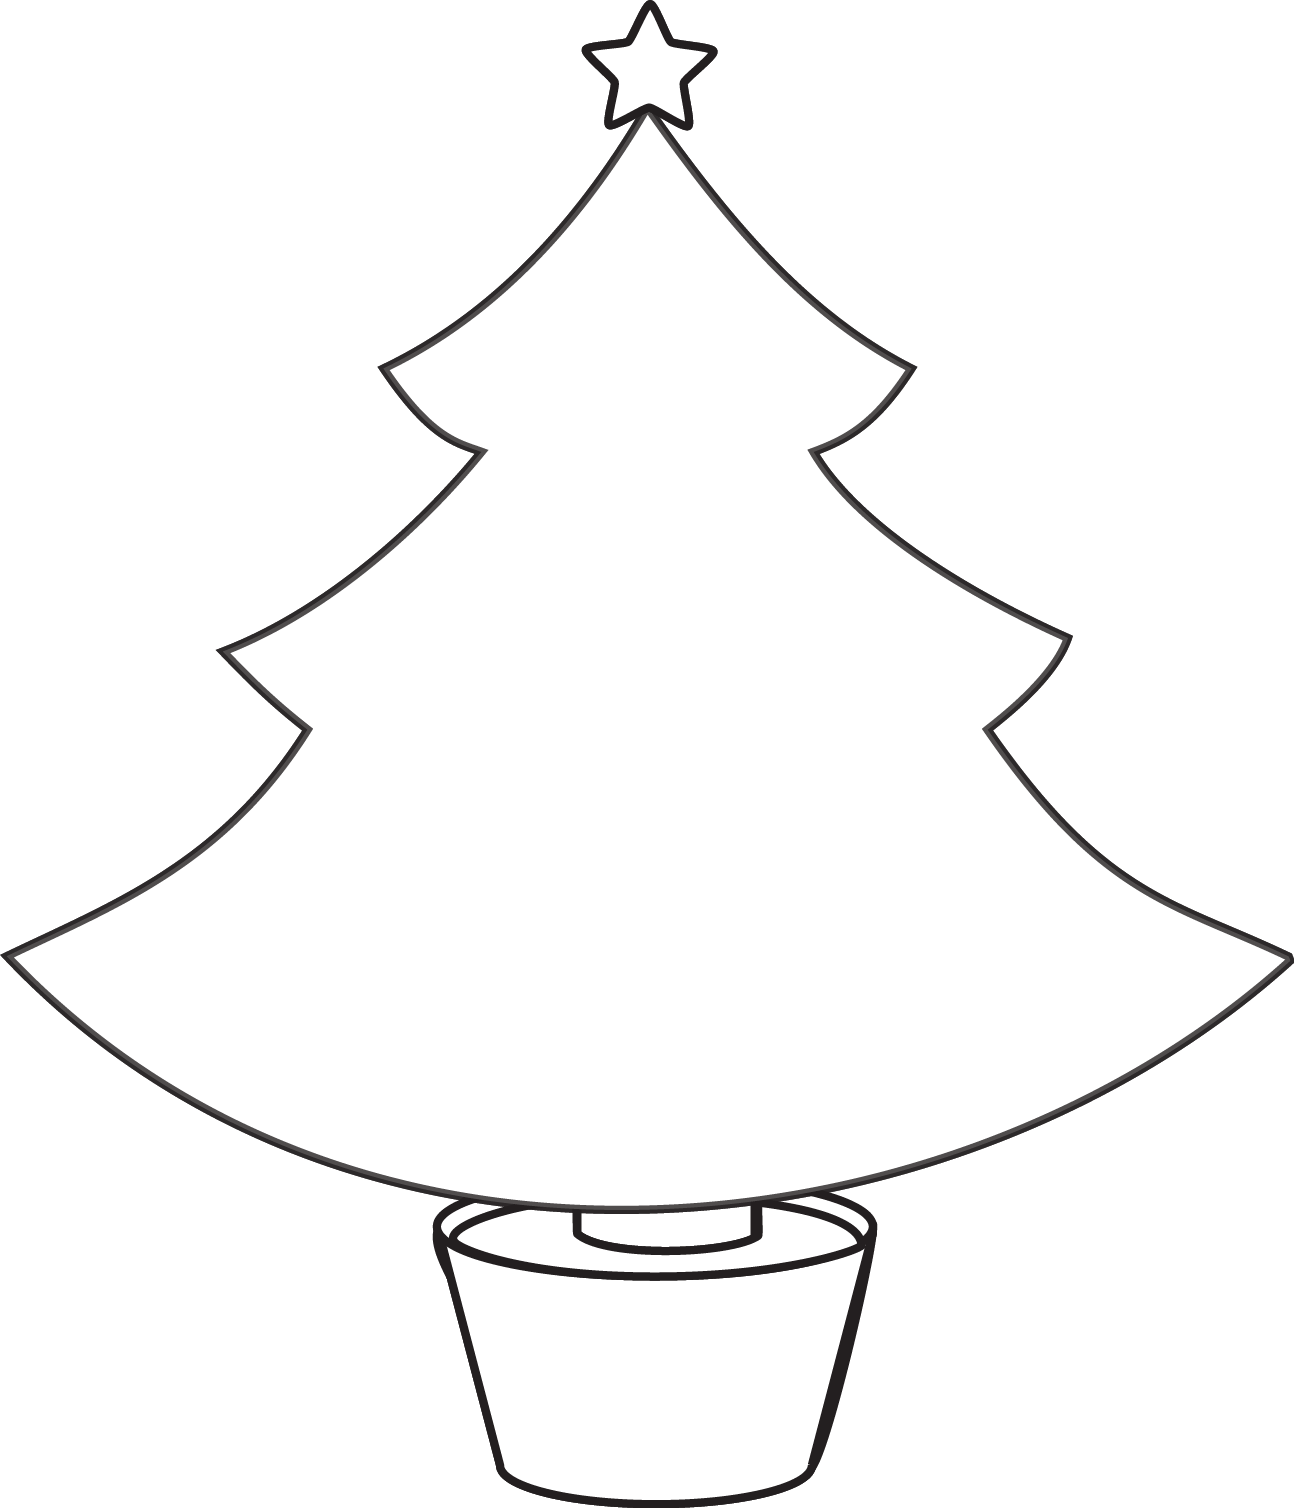 clipart christmas tree outline google search mdiy pinterest rh pinterest com